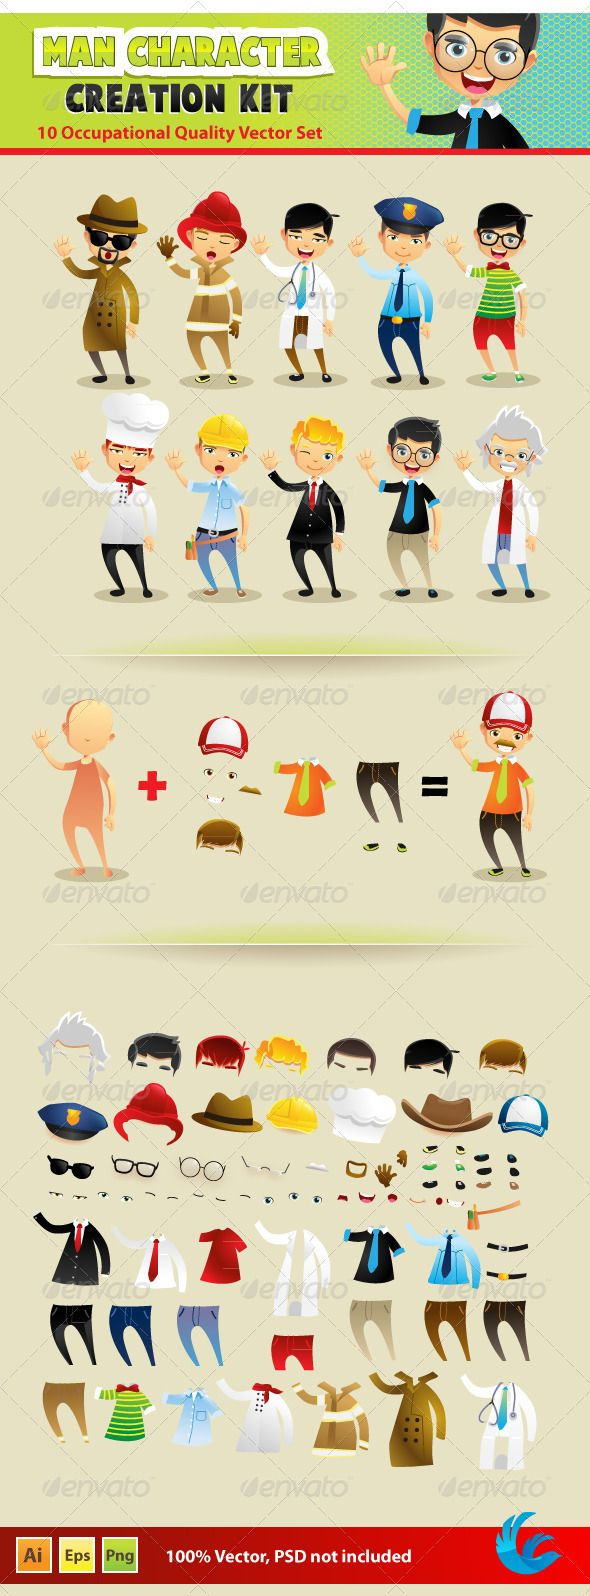 Clipart character creator clip art library 1000+ images about fill in poster on Pinterest | Wedding posters ... clip art library